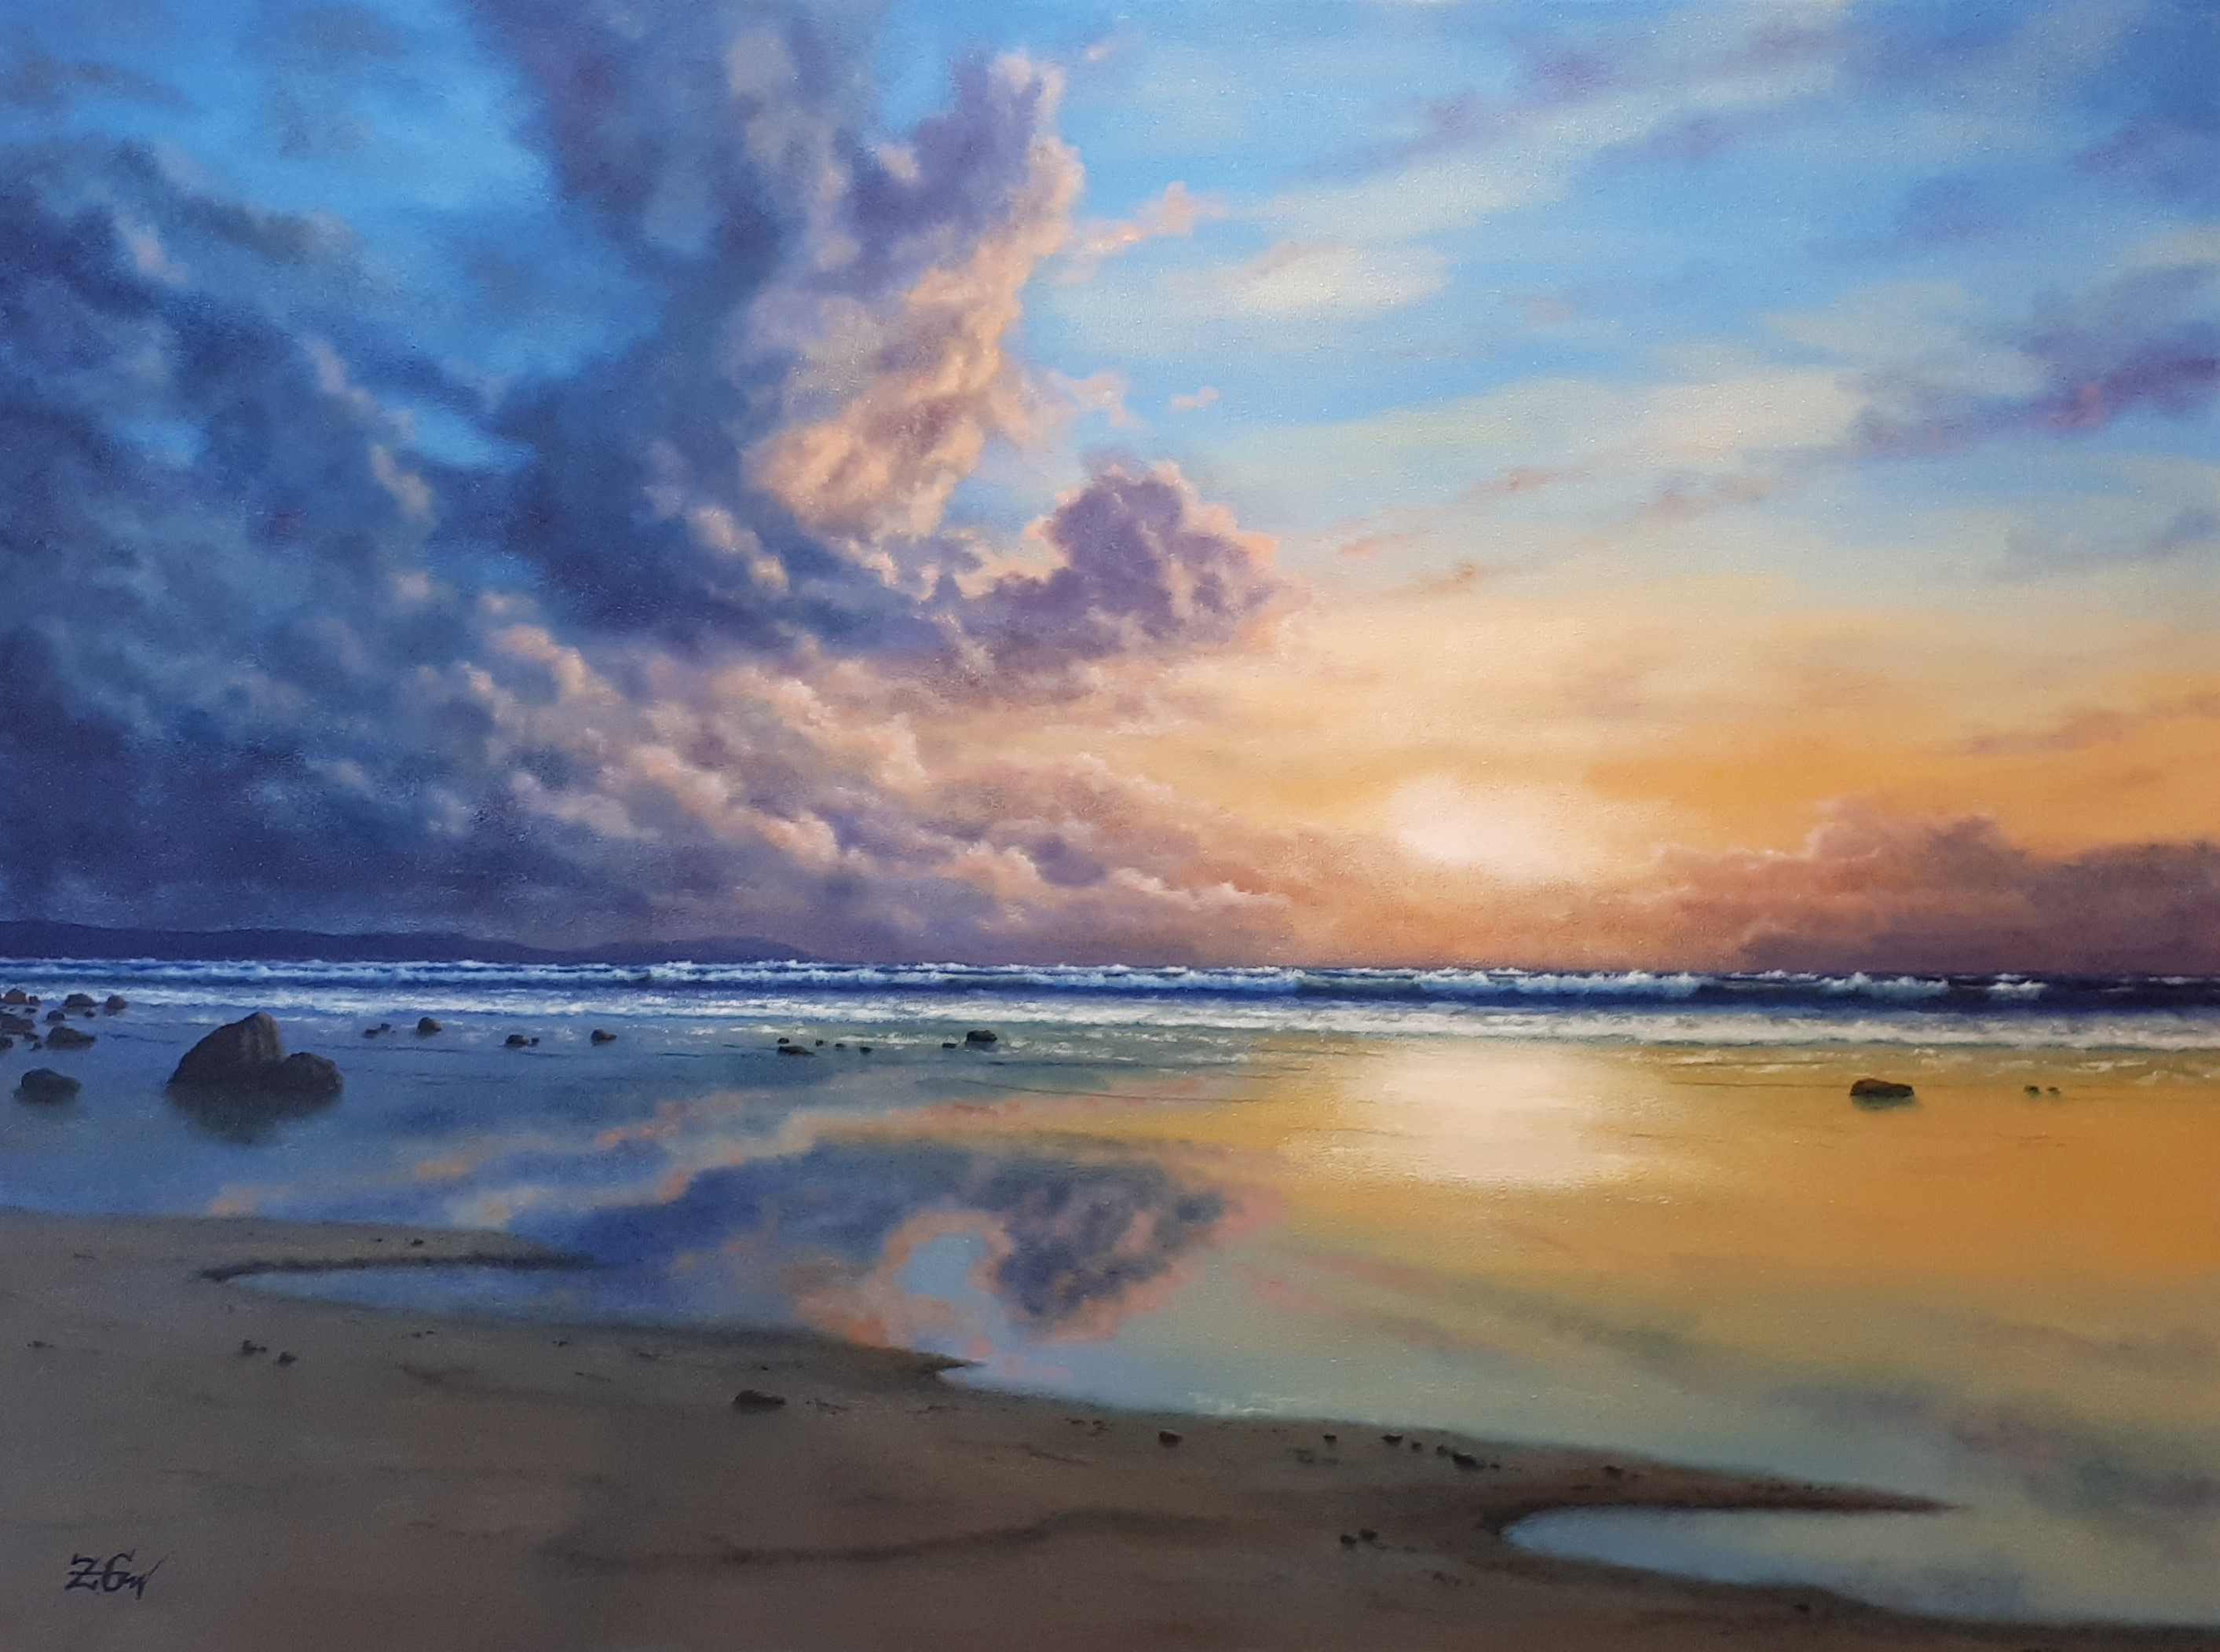 Evening mood with clouds artwork by Zigmars Grundmanis - art listed for sale on Artplode